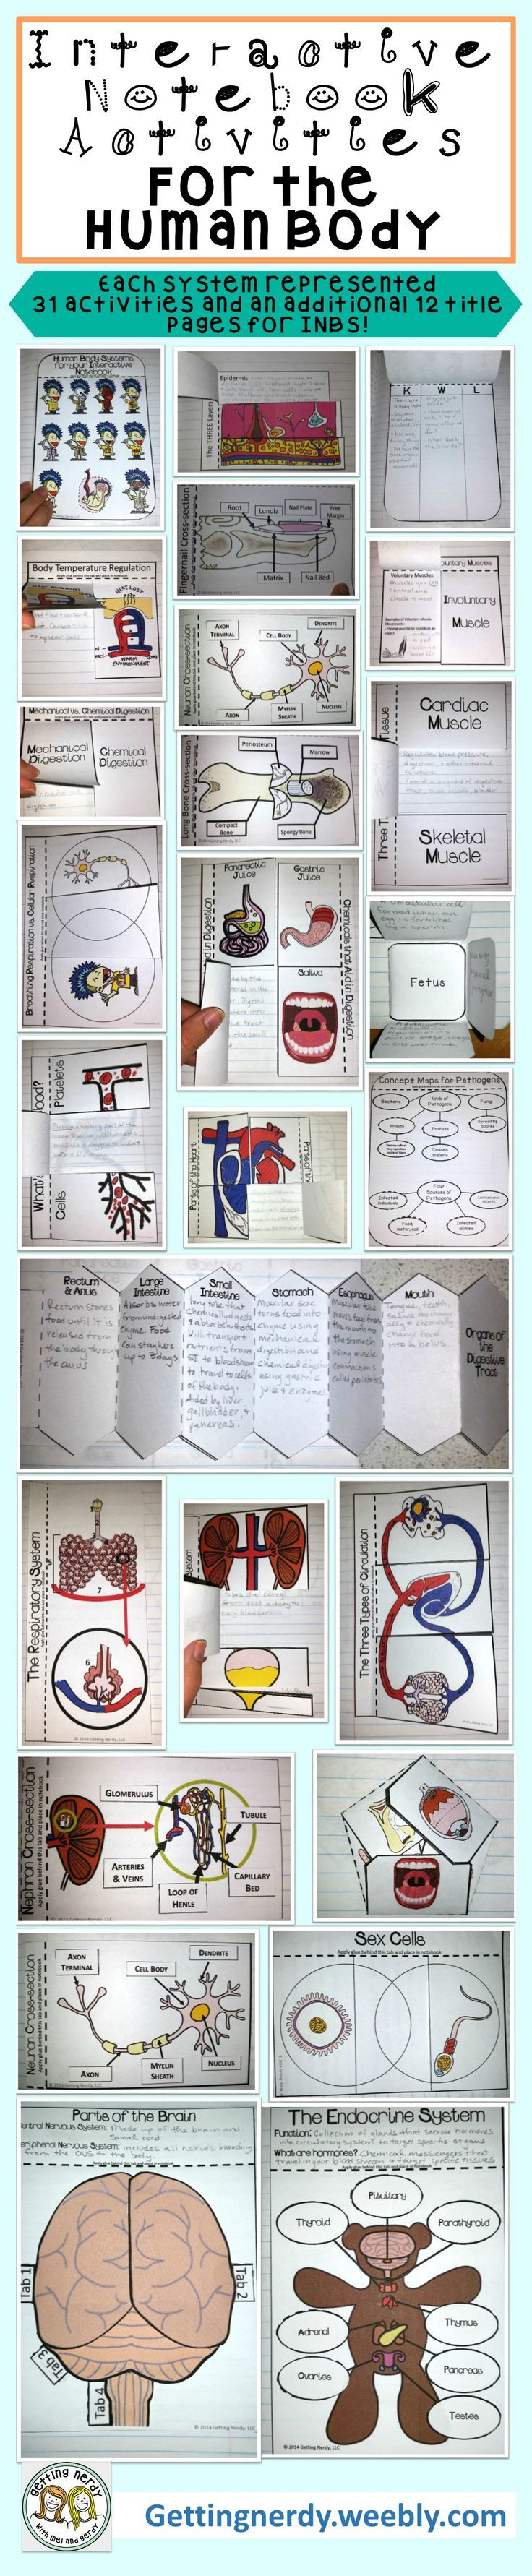 Tons of interactive science notebook activities for the Human Body. Super colorful too.